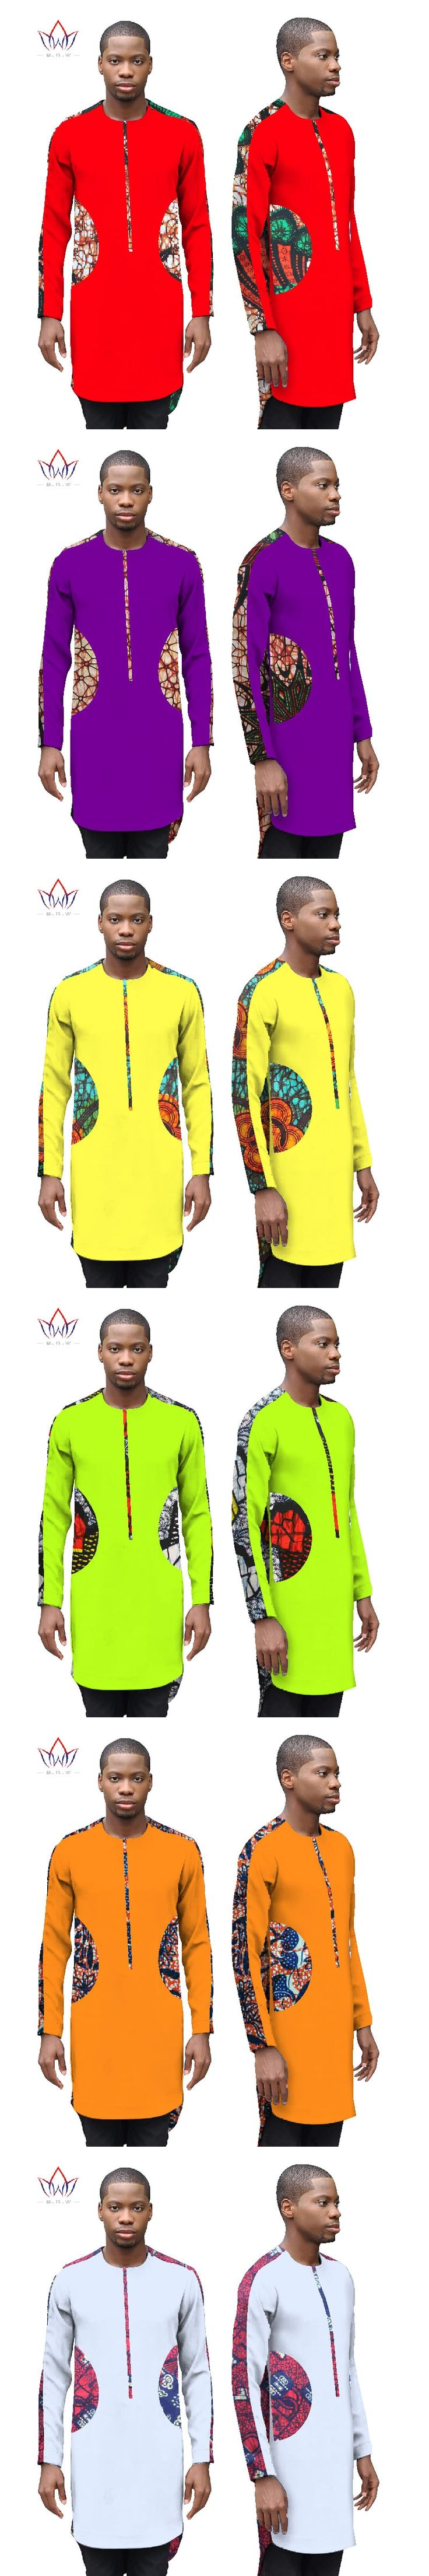 2017 New Autumn Male Shirt Men Shirt Long Sleeve Dashiki African Printed Men Shirts Long Shirt Mens African Clothing 6XL WYN299